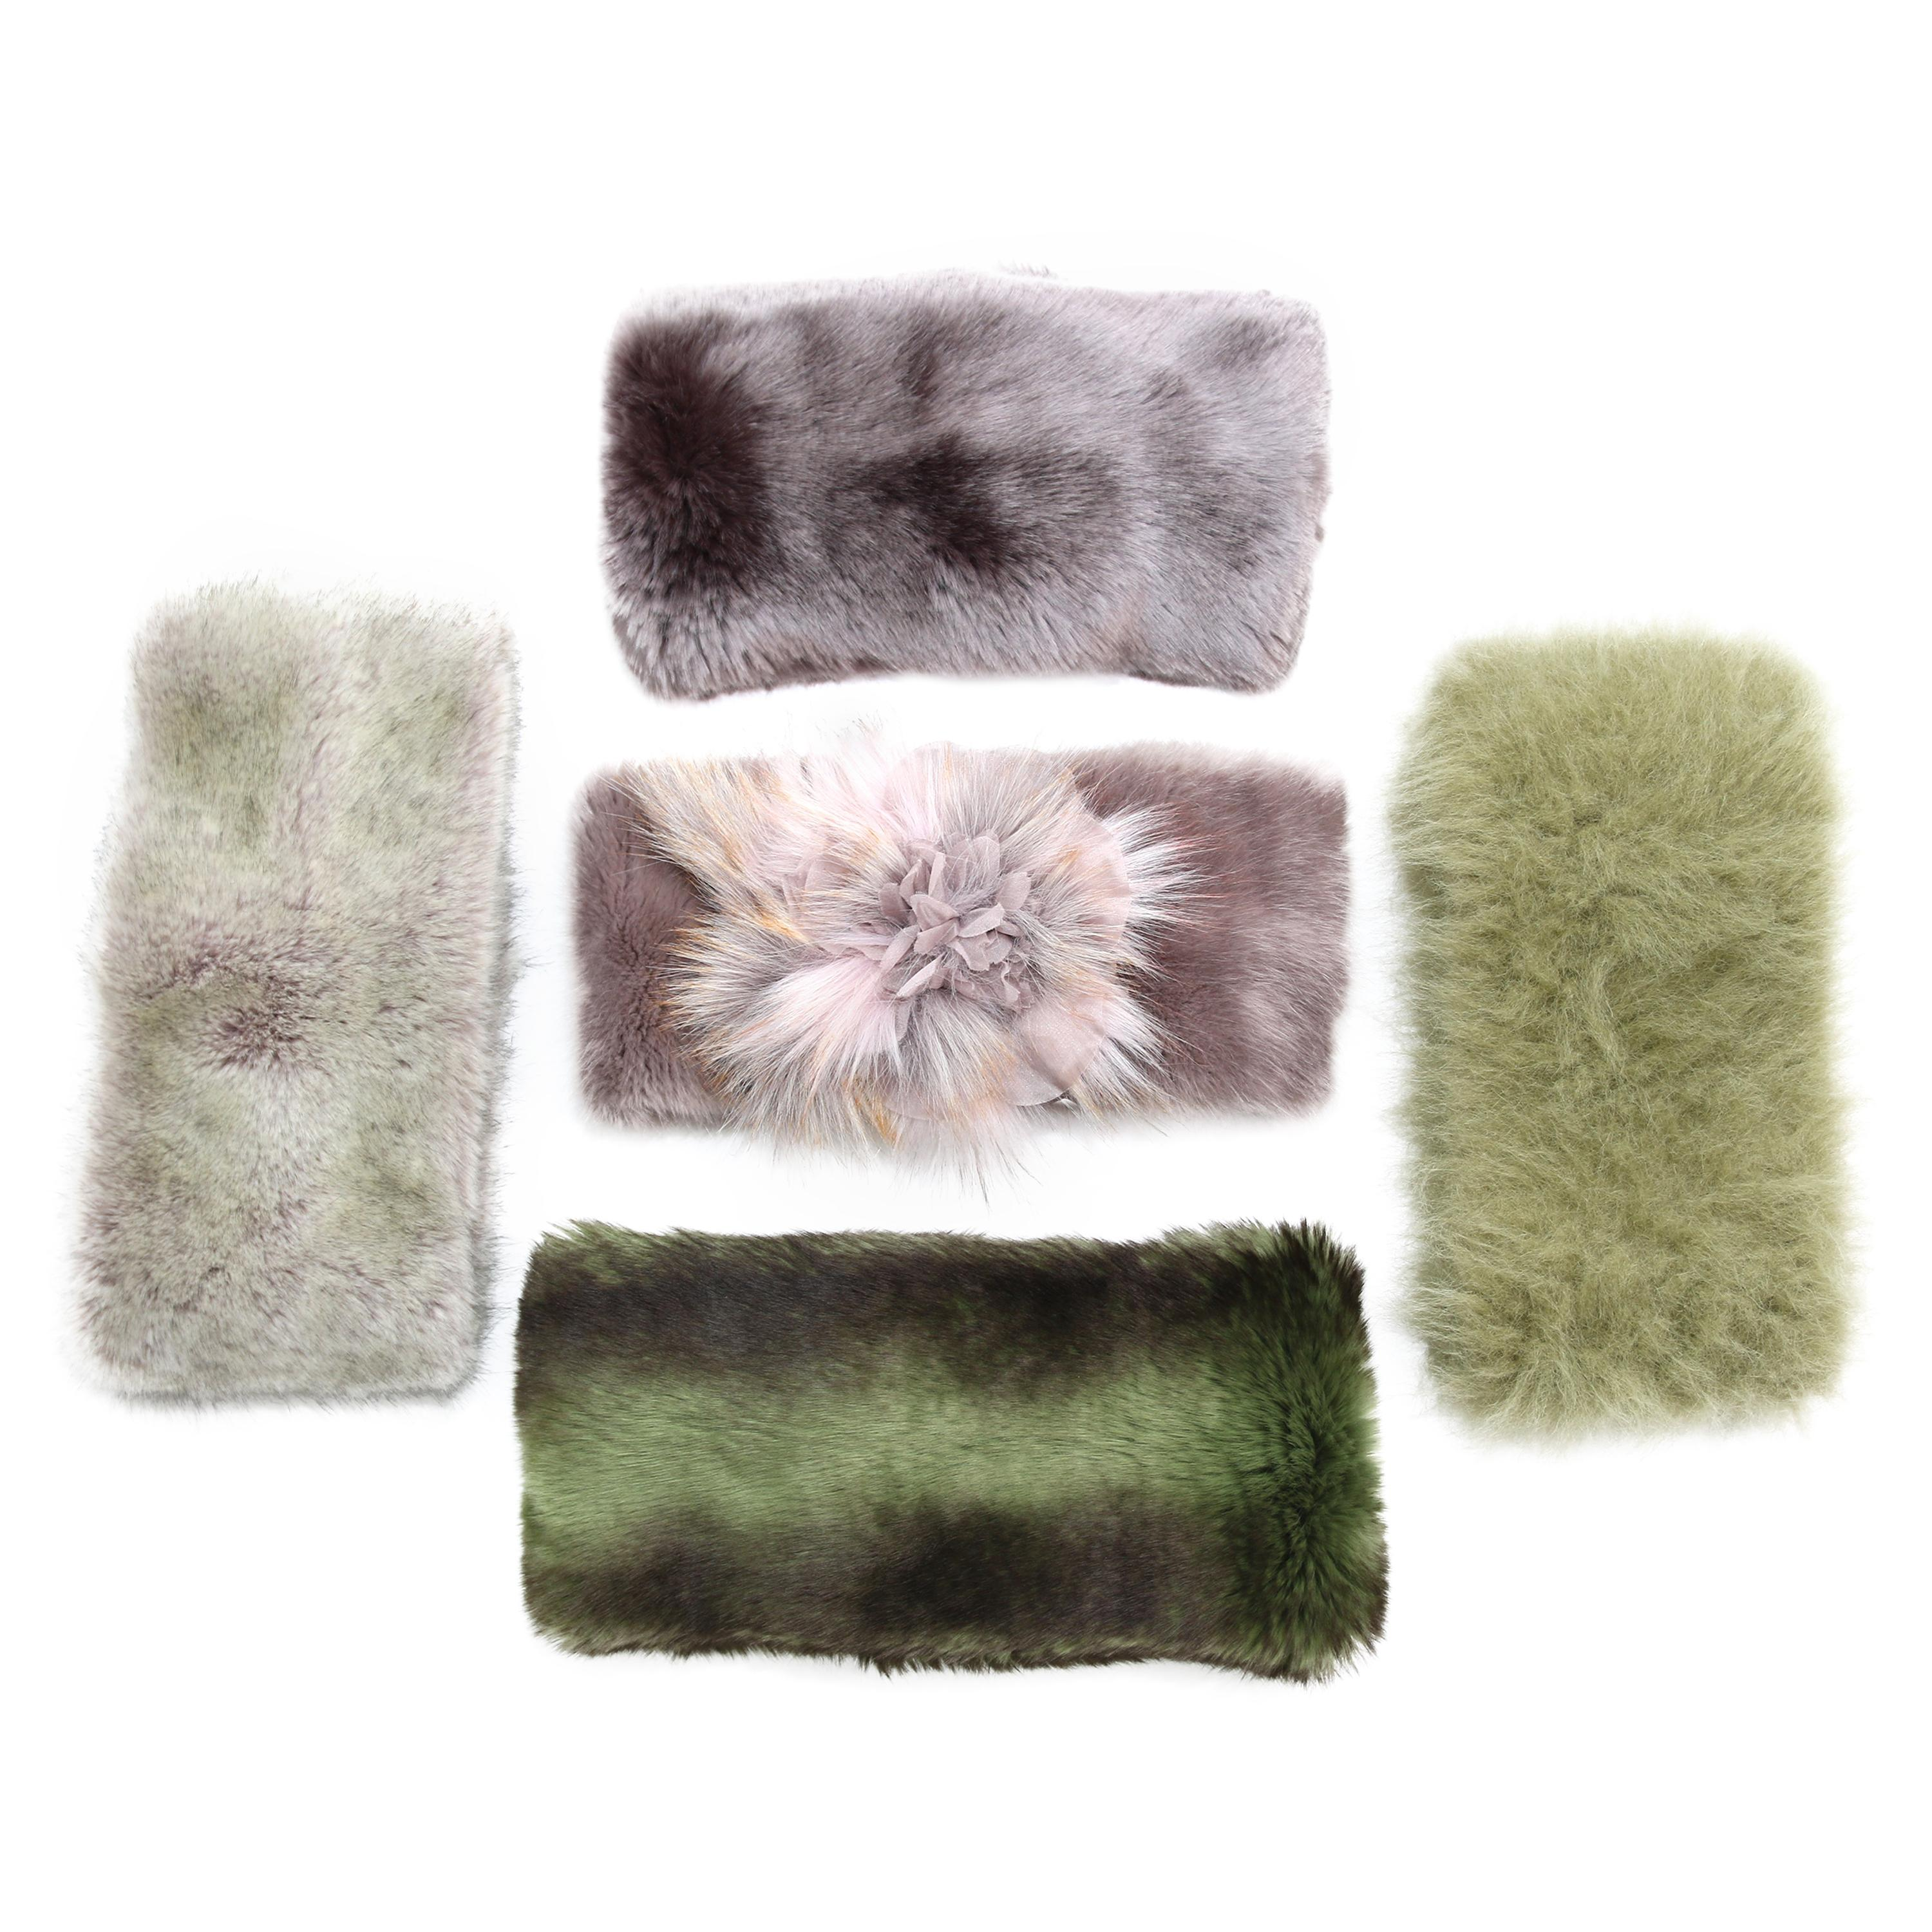 Pelush Faux Fur Scarfs And Hats - Set of 5 - One Size - Get One Free!